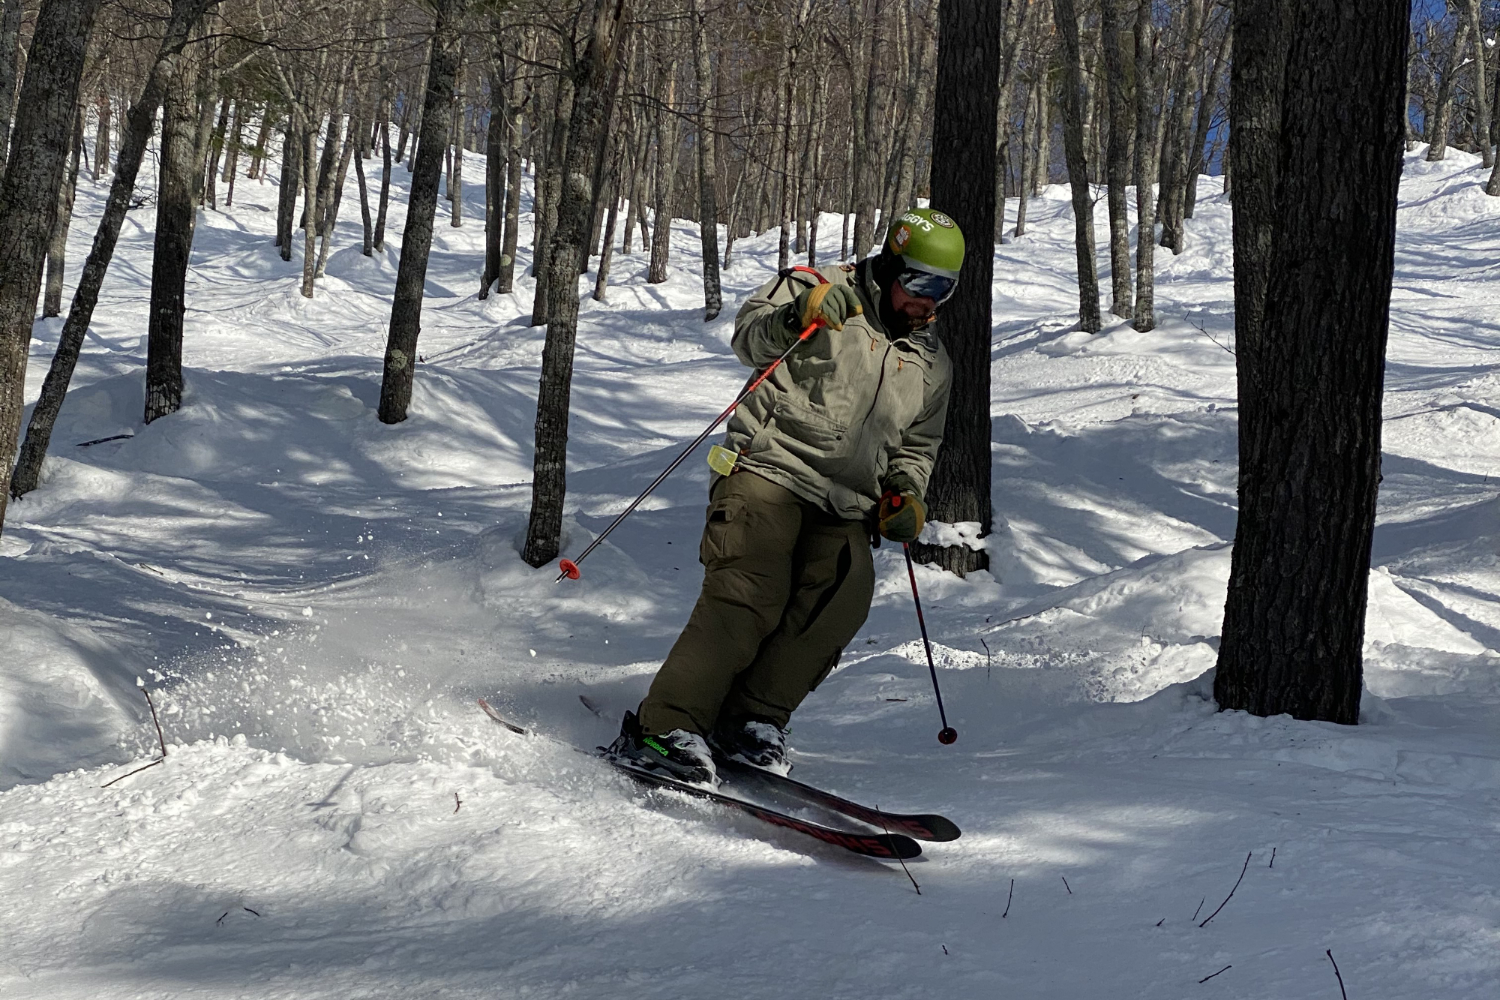 skiing in trees at Mt Bohemia Michigan